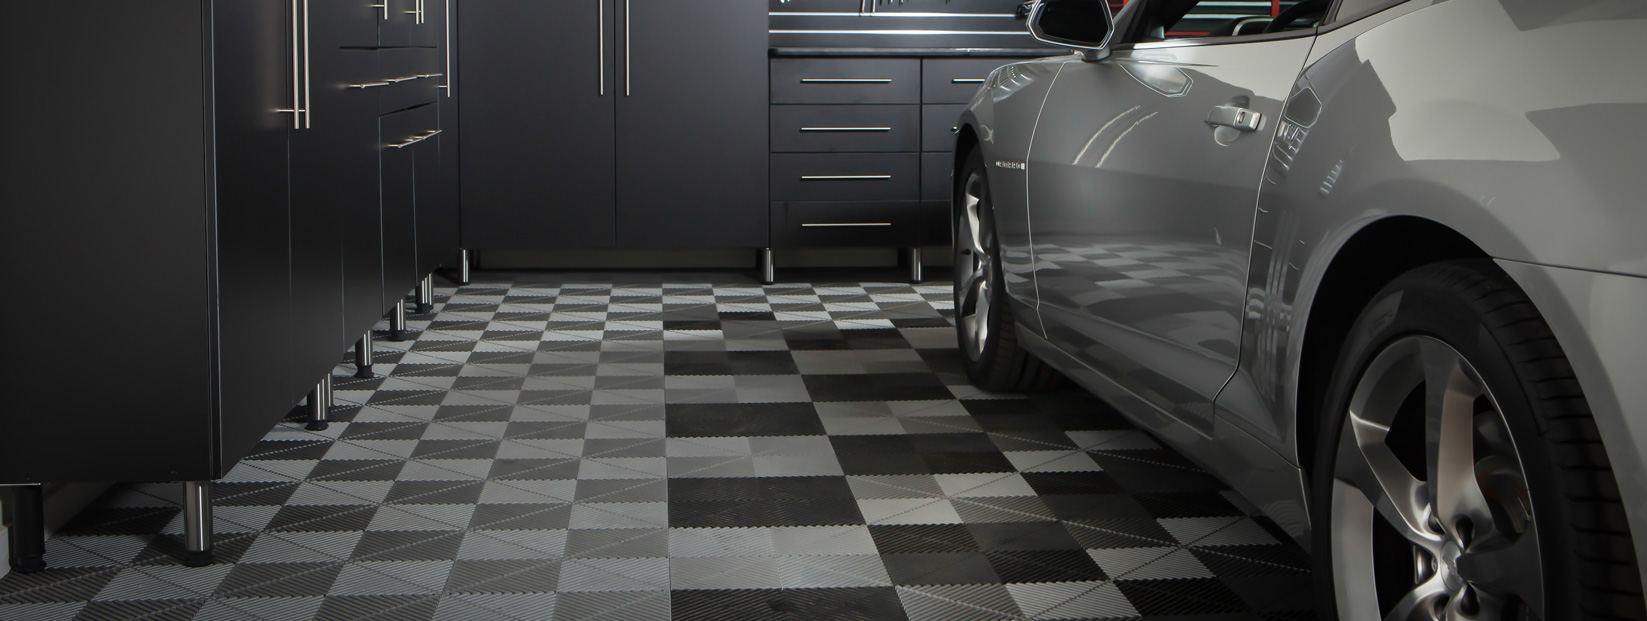 Garage Floor Tiles Baltimore